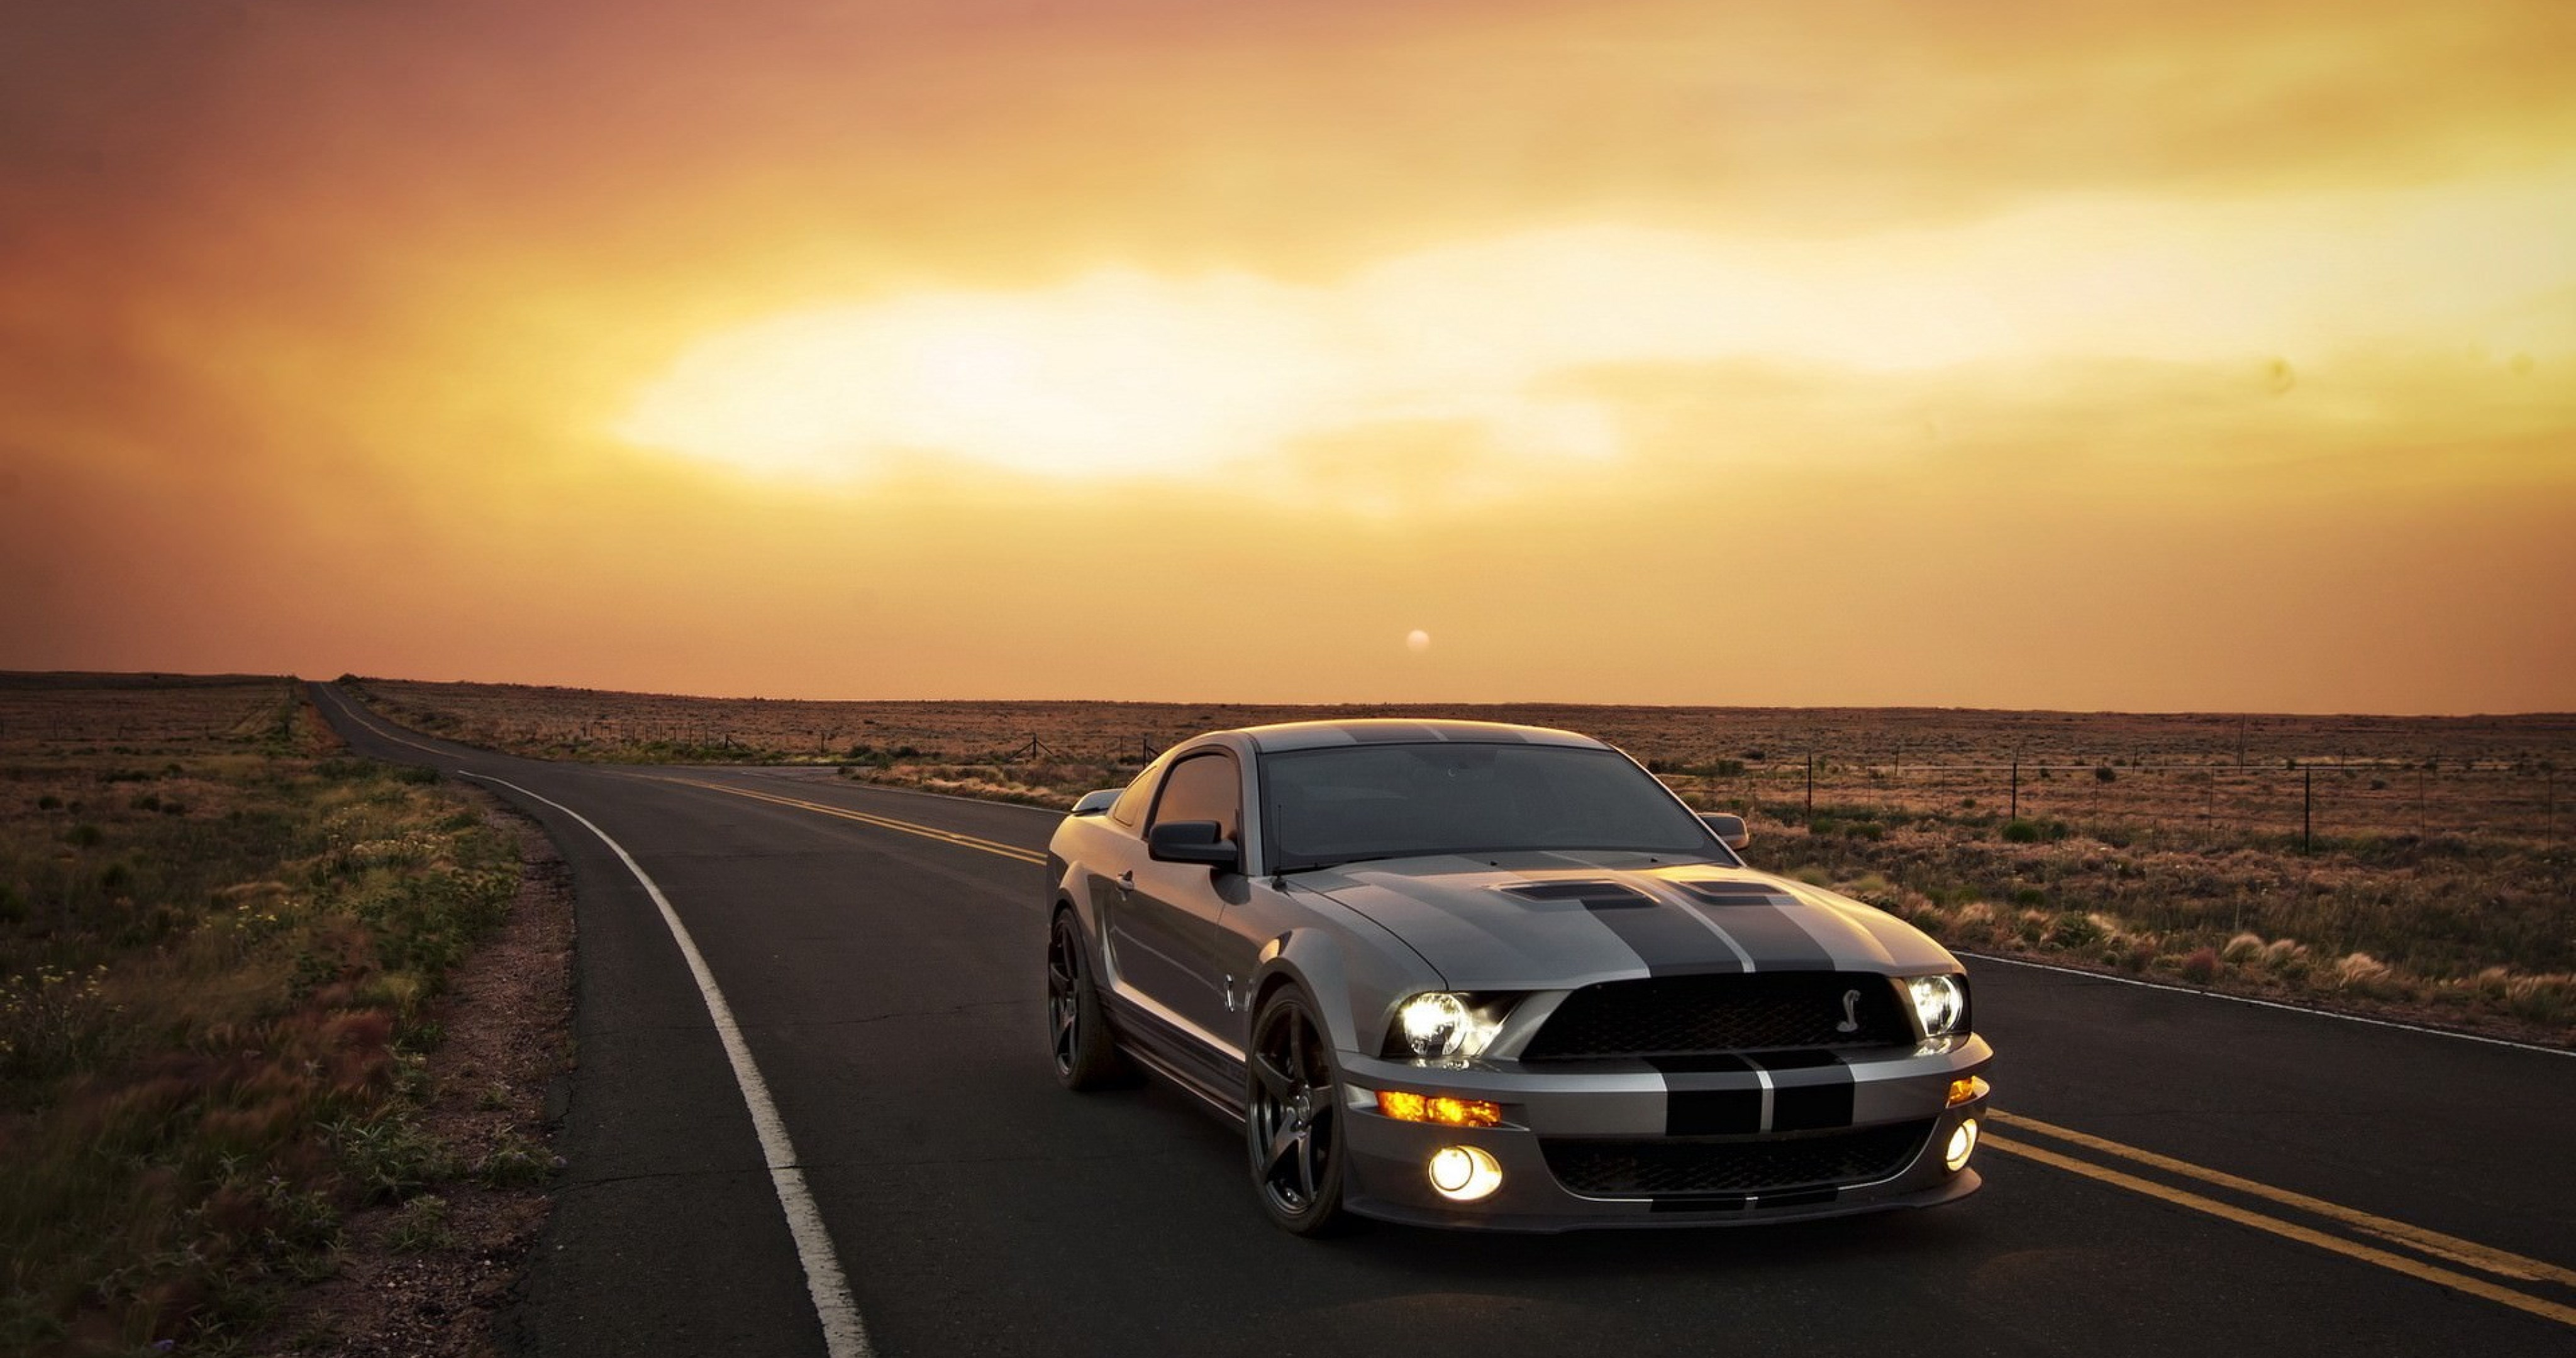 Ford mustang 2015 rtr 4k ultra hd wallpaper high quality - Hd 4k resolution wallpaper ...